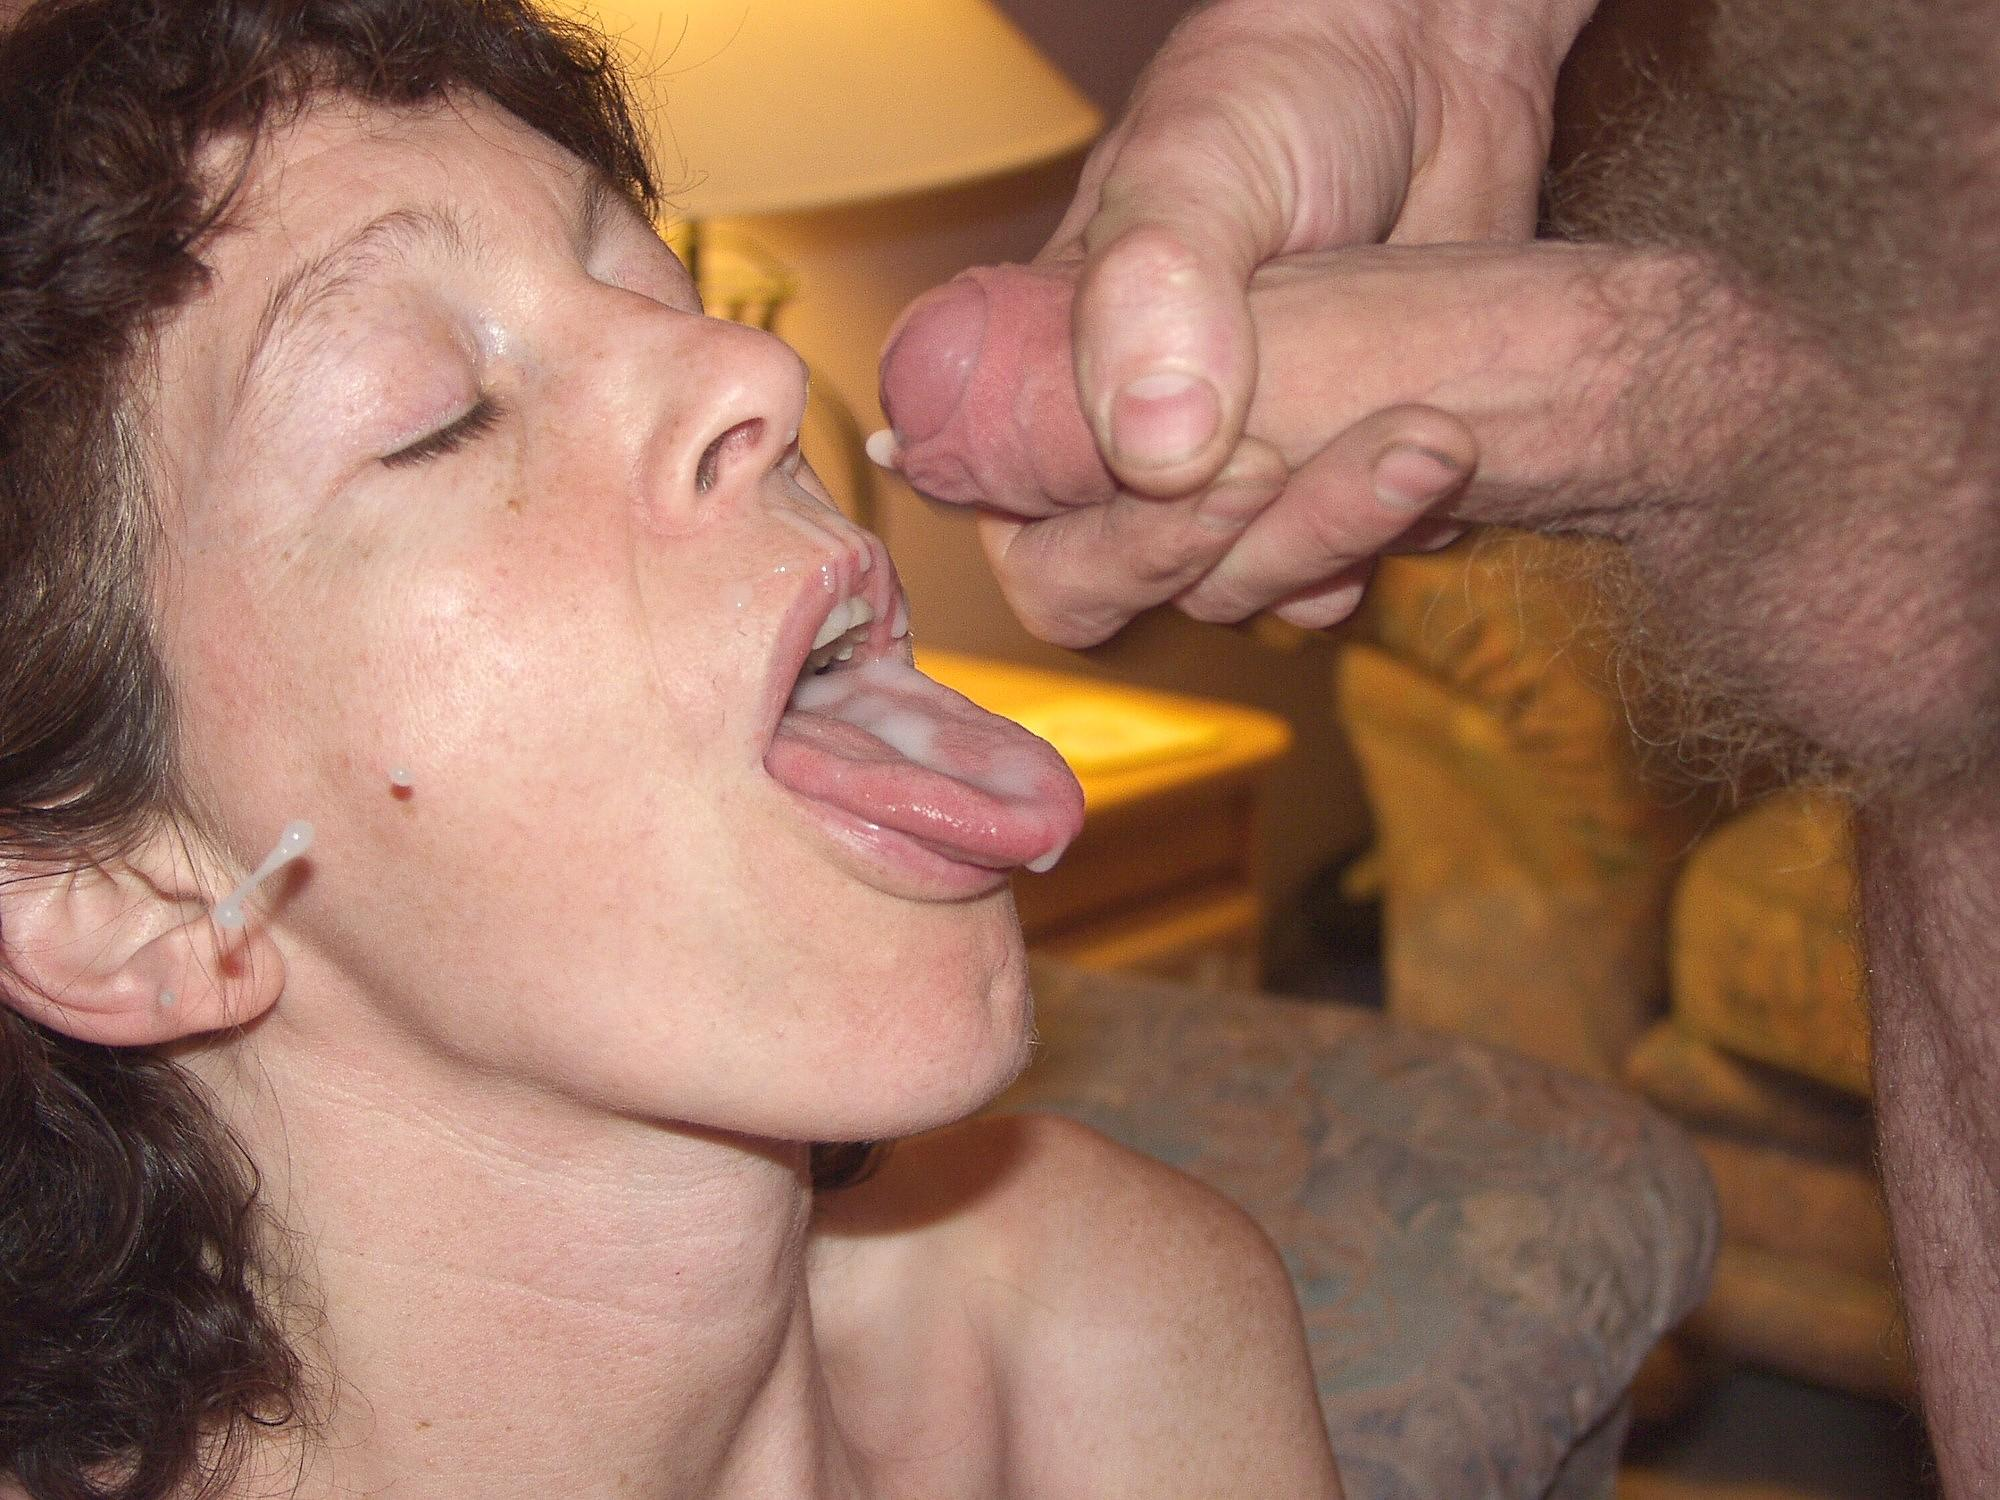 something is. cum pumping oral cumshot can recommend visit you